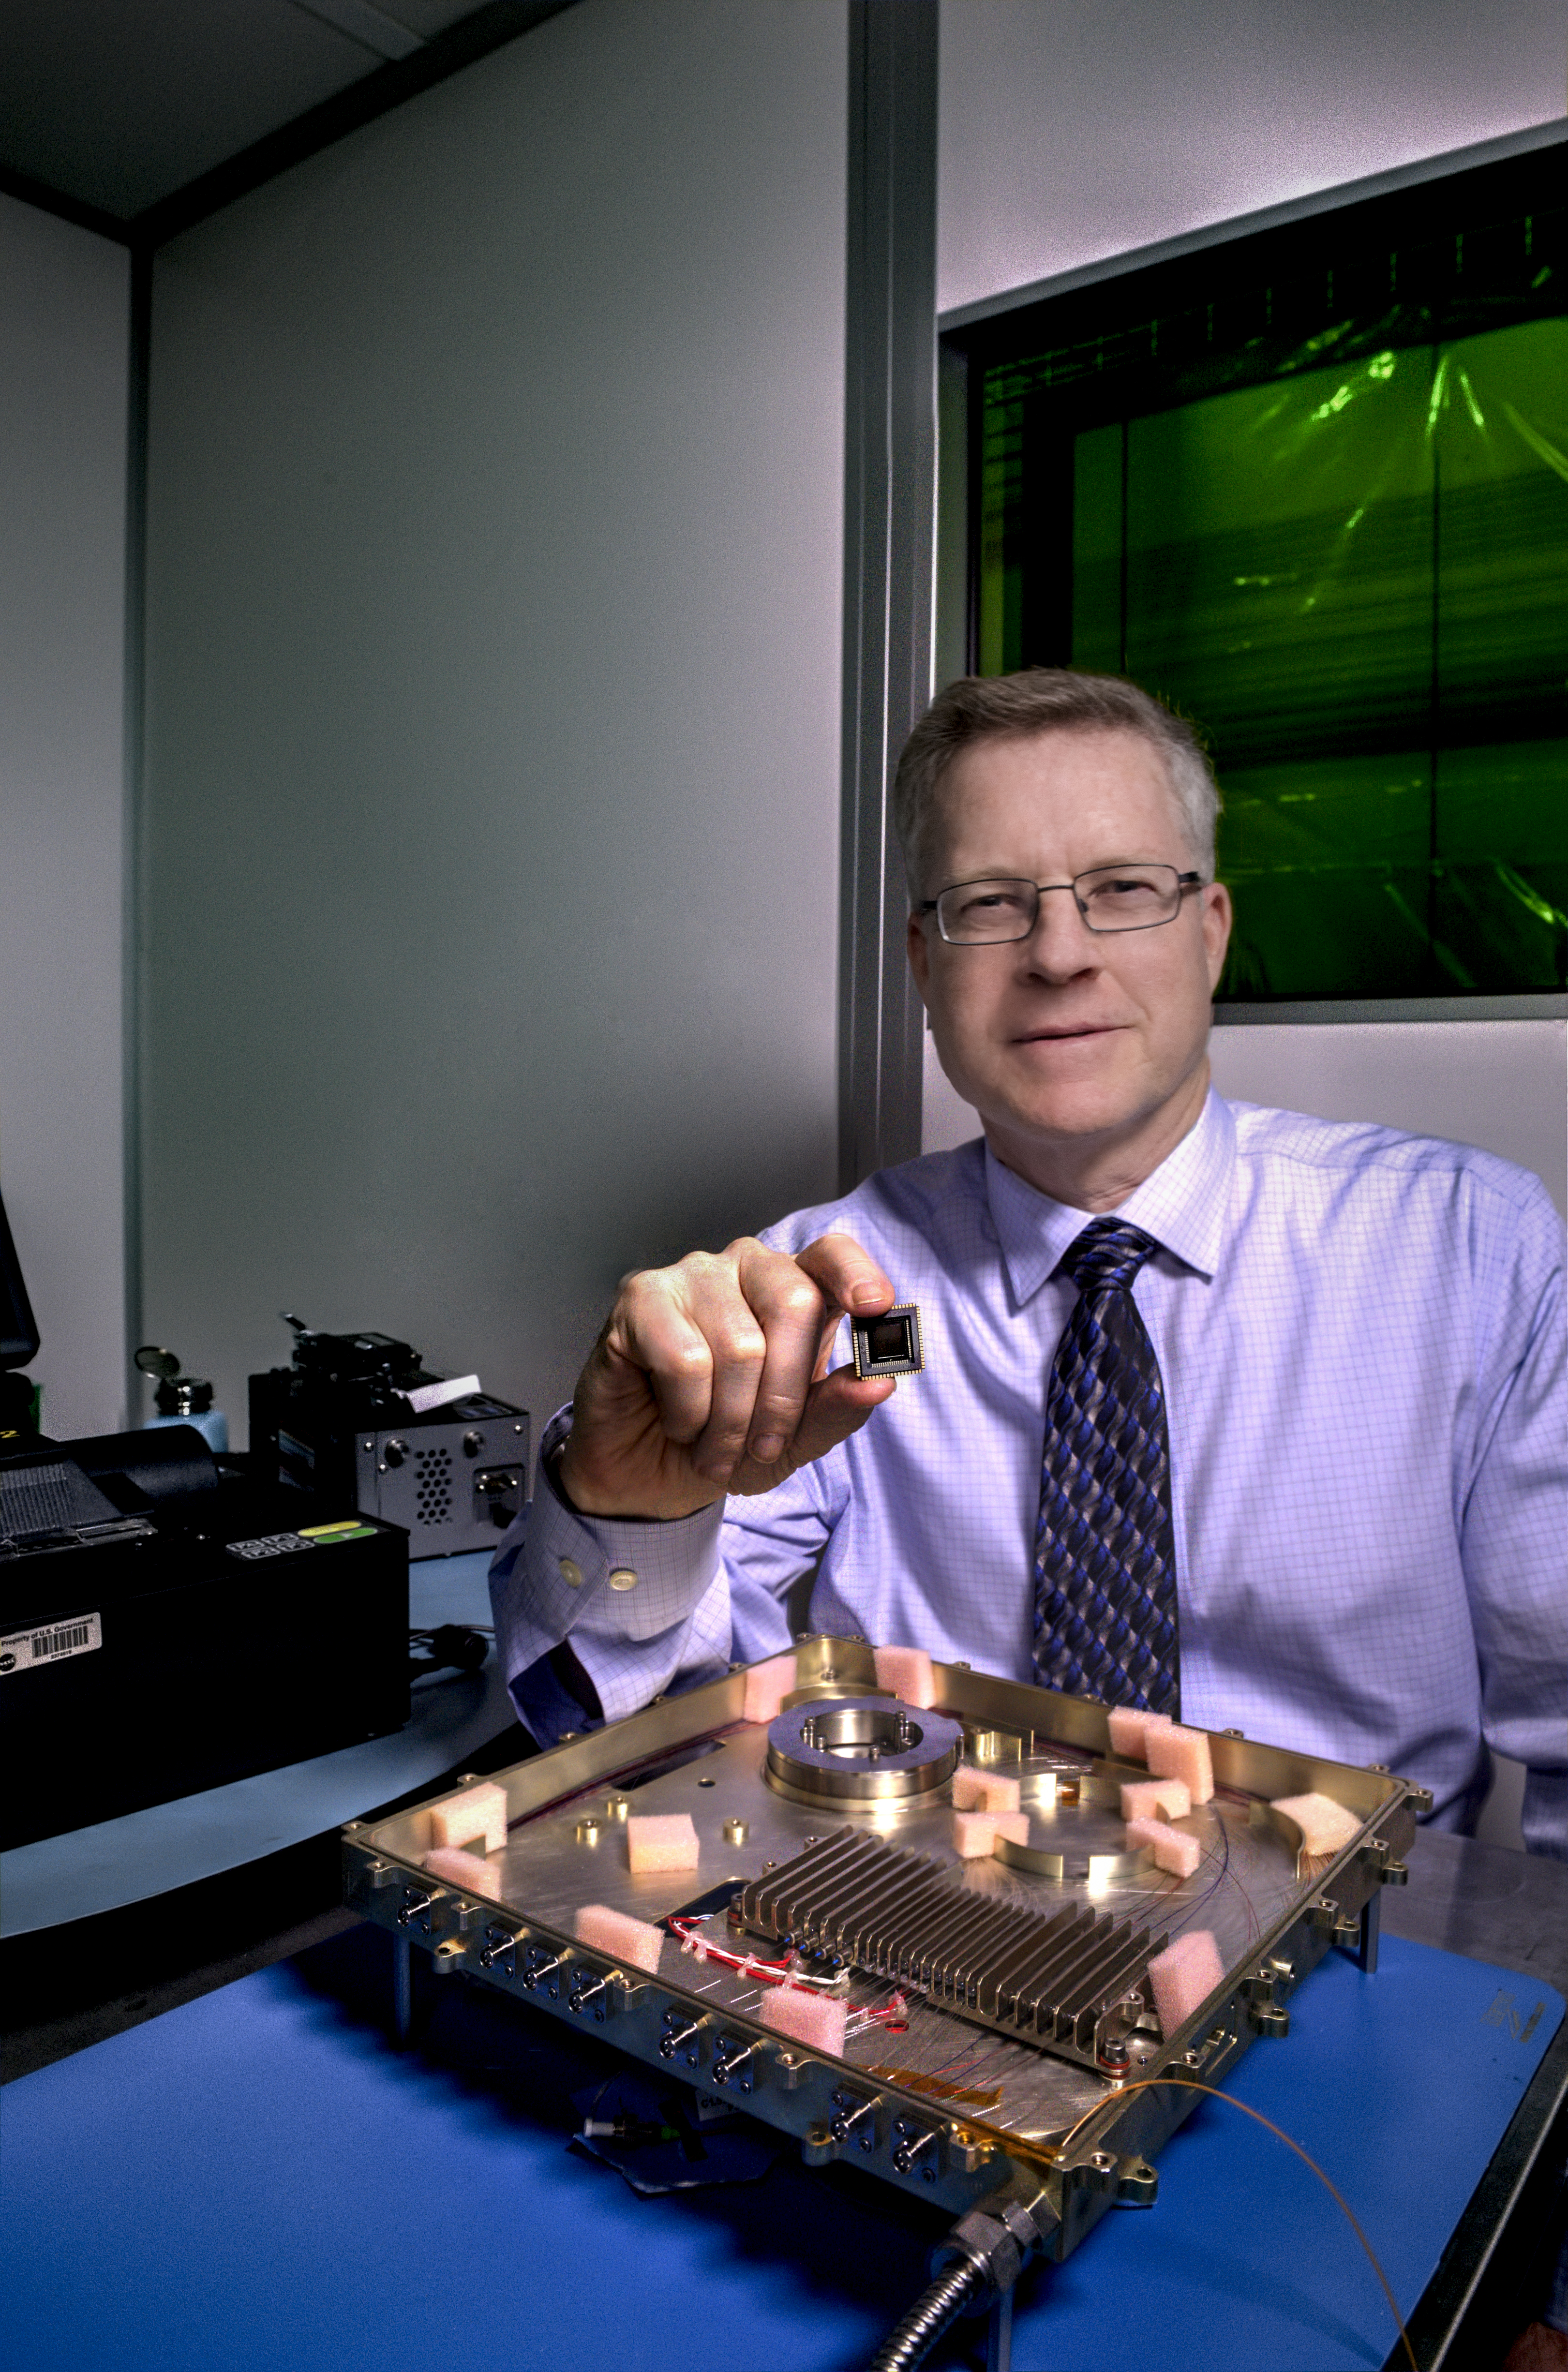 Nasa Engineers To Build First Integrated Photonics Modem Kurzweil Increase Internet Speed 100 Times Faster Using Photonic Circuit